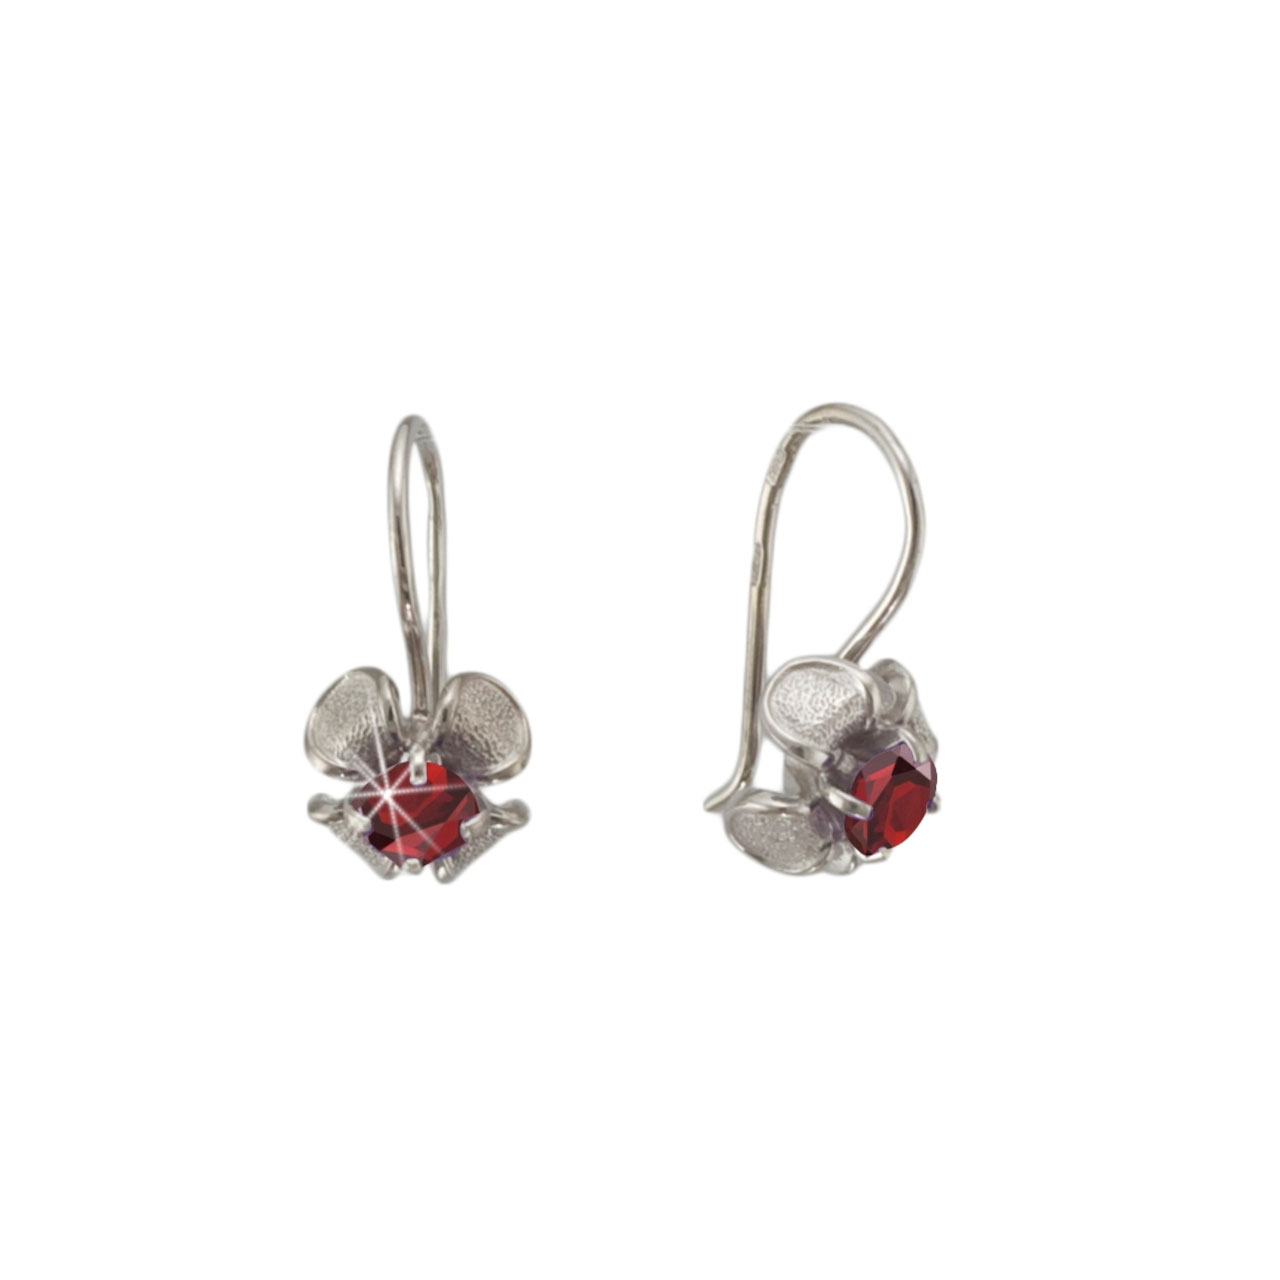 Silver Iris Flower Earrings: A Garnet Stigma